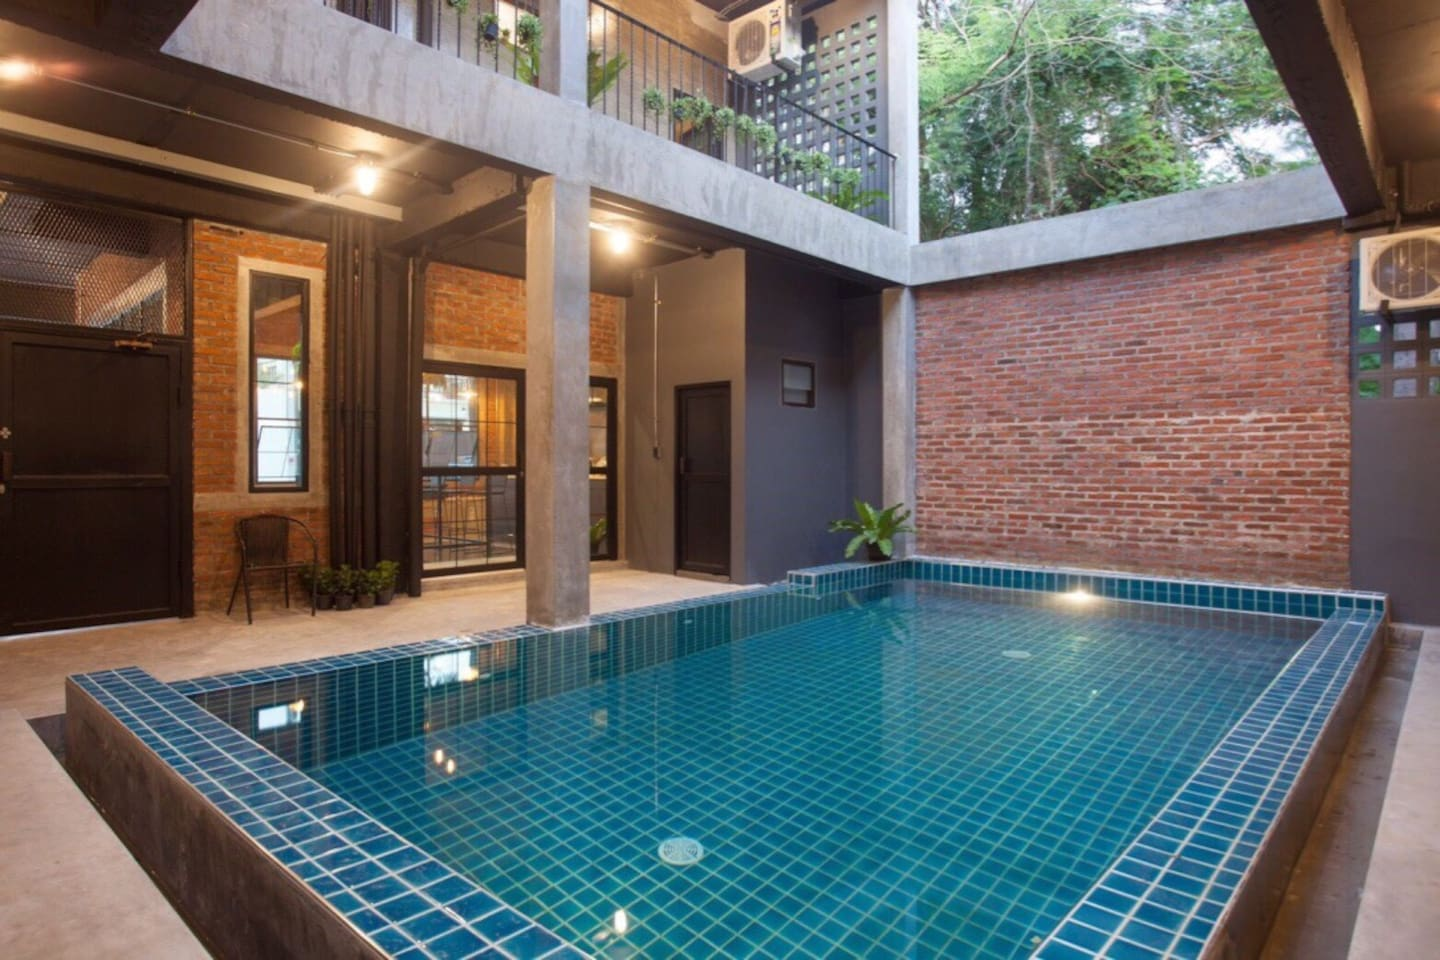 Shared swimming pool on 1st floor